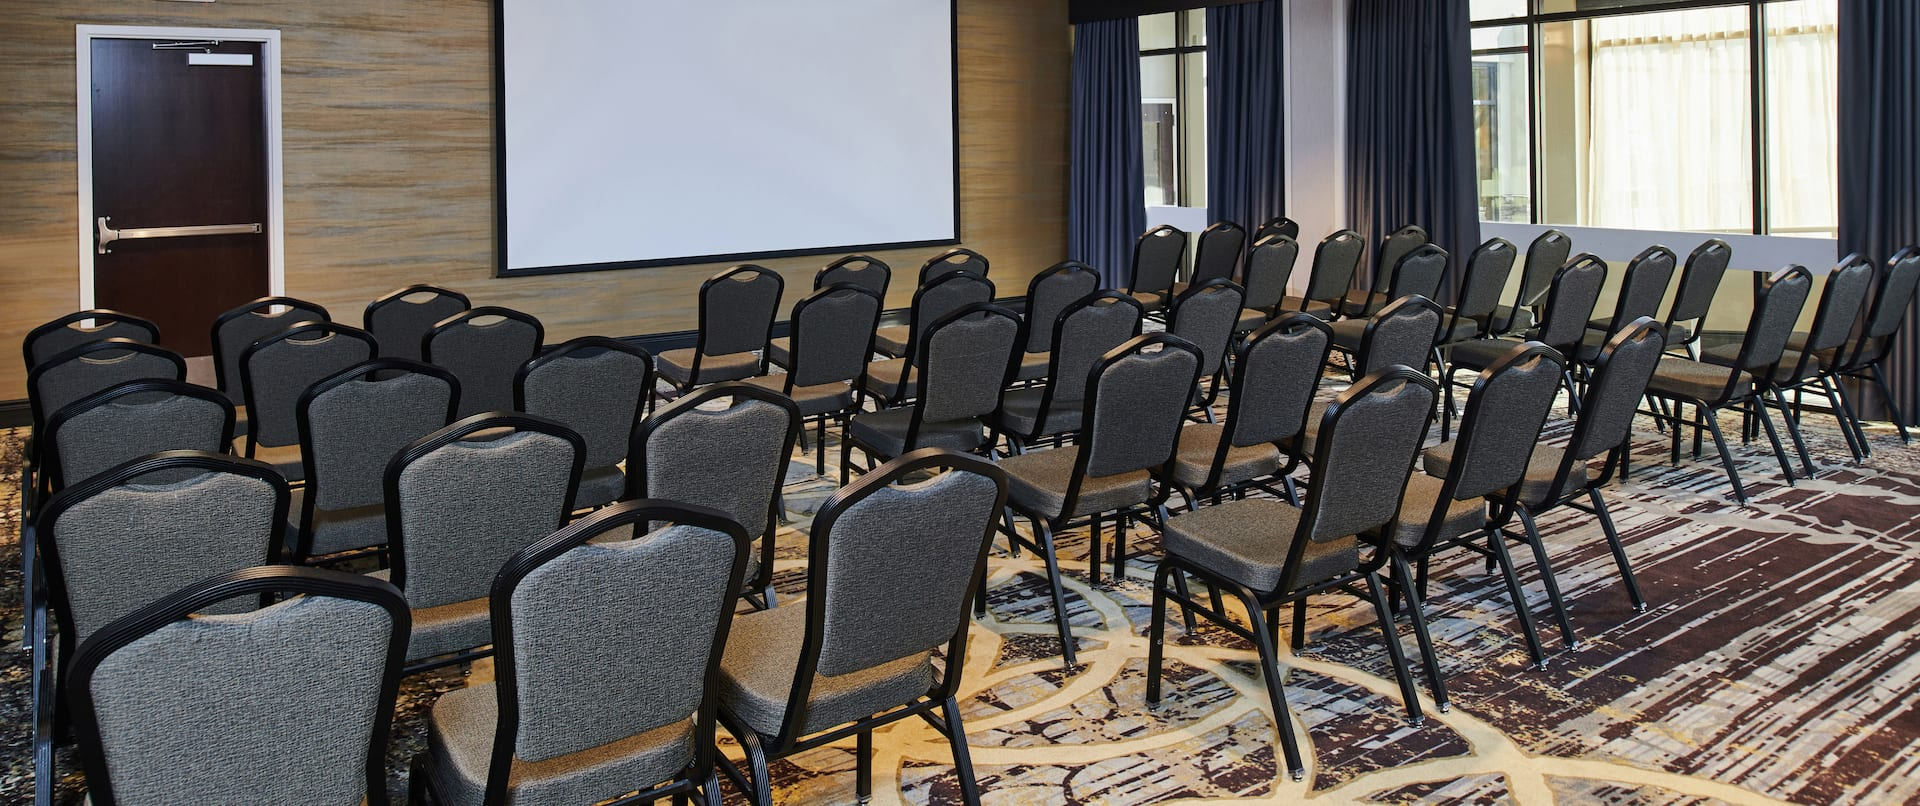 Classroom Style Theater Seating Setup and Meeting Space